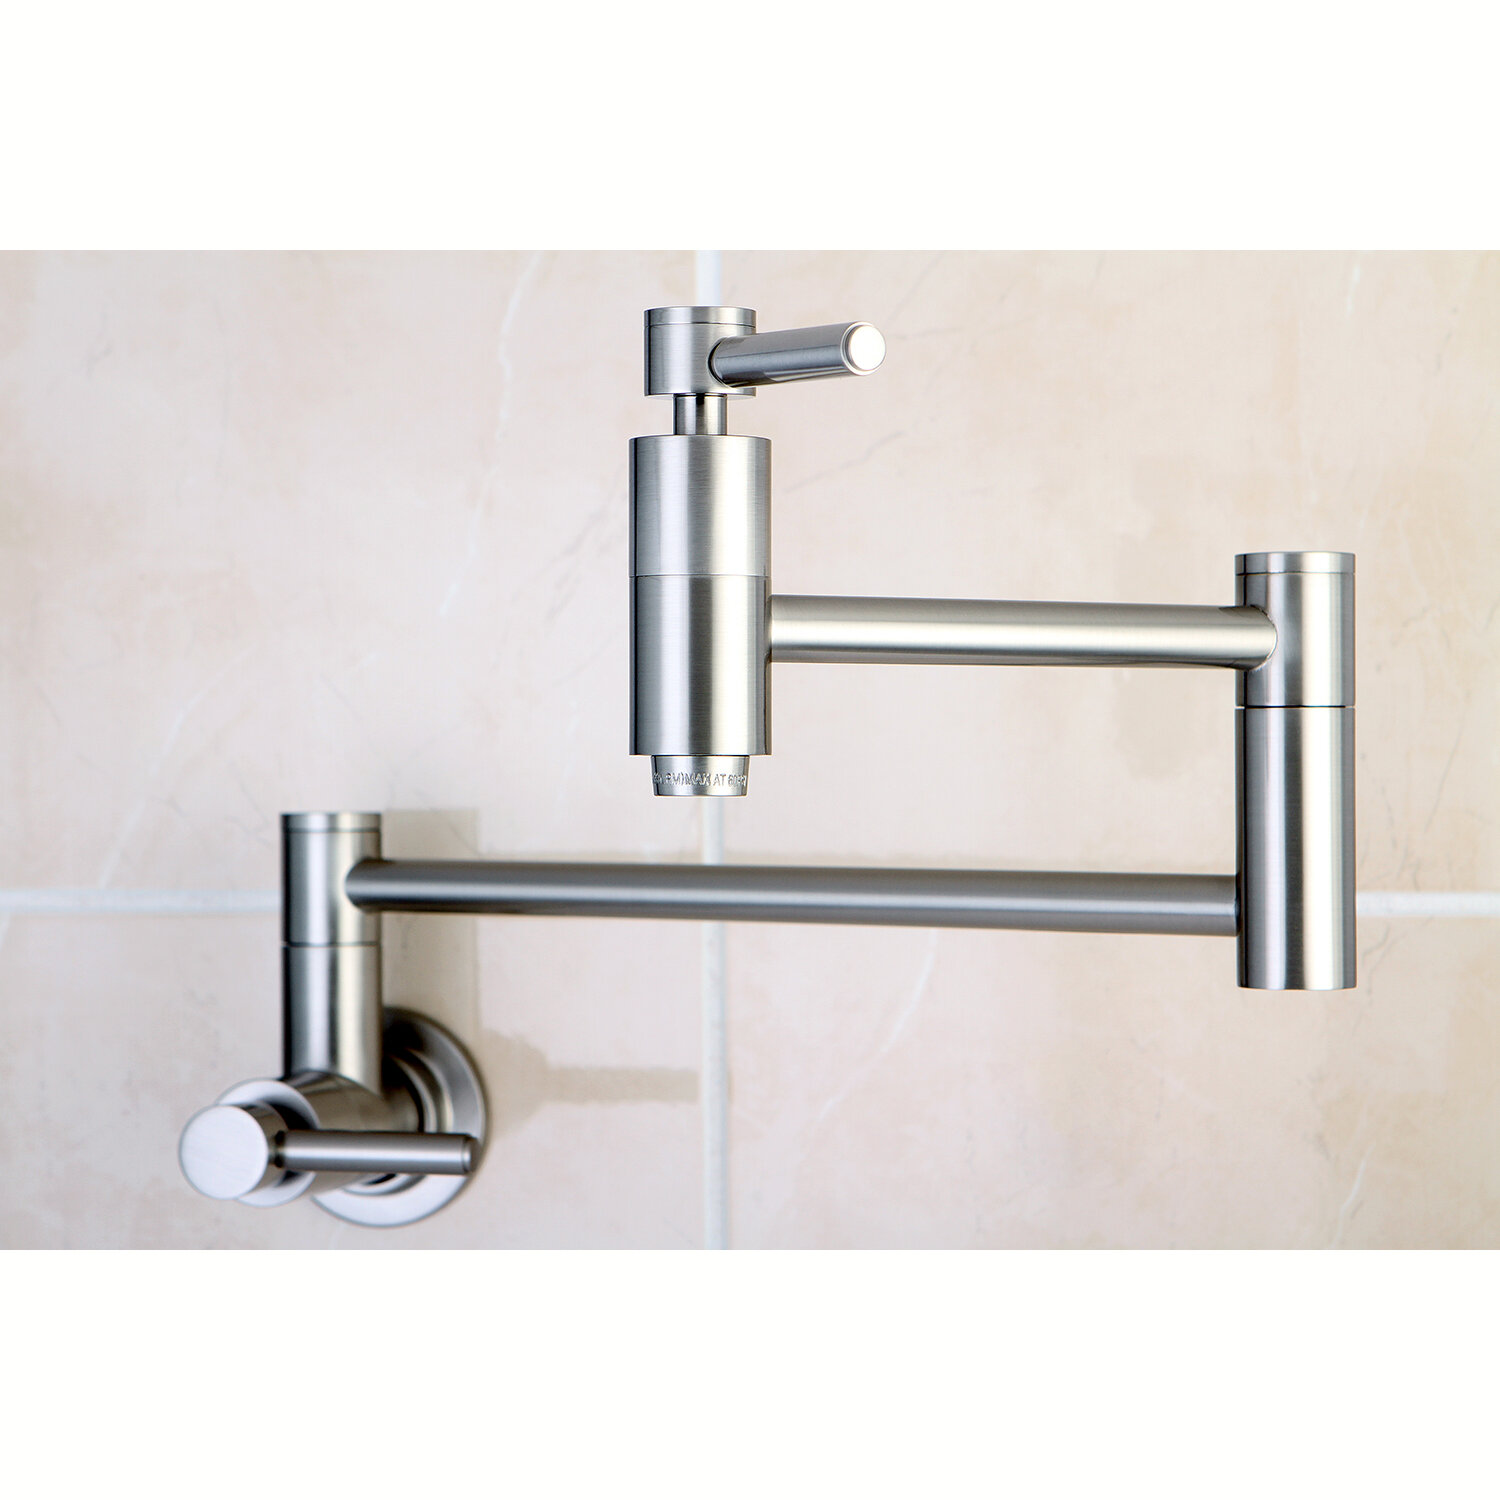 Picture of: Wall Mounted Kitchen Faucet Wayfair